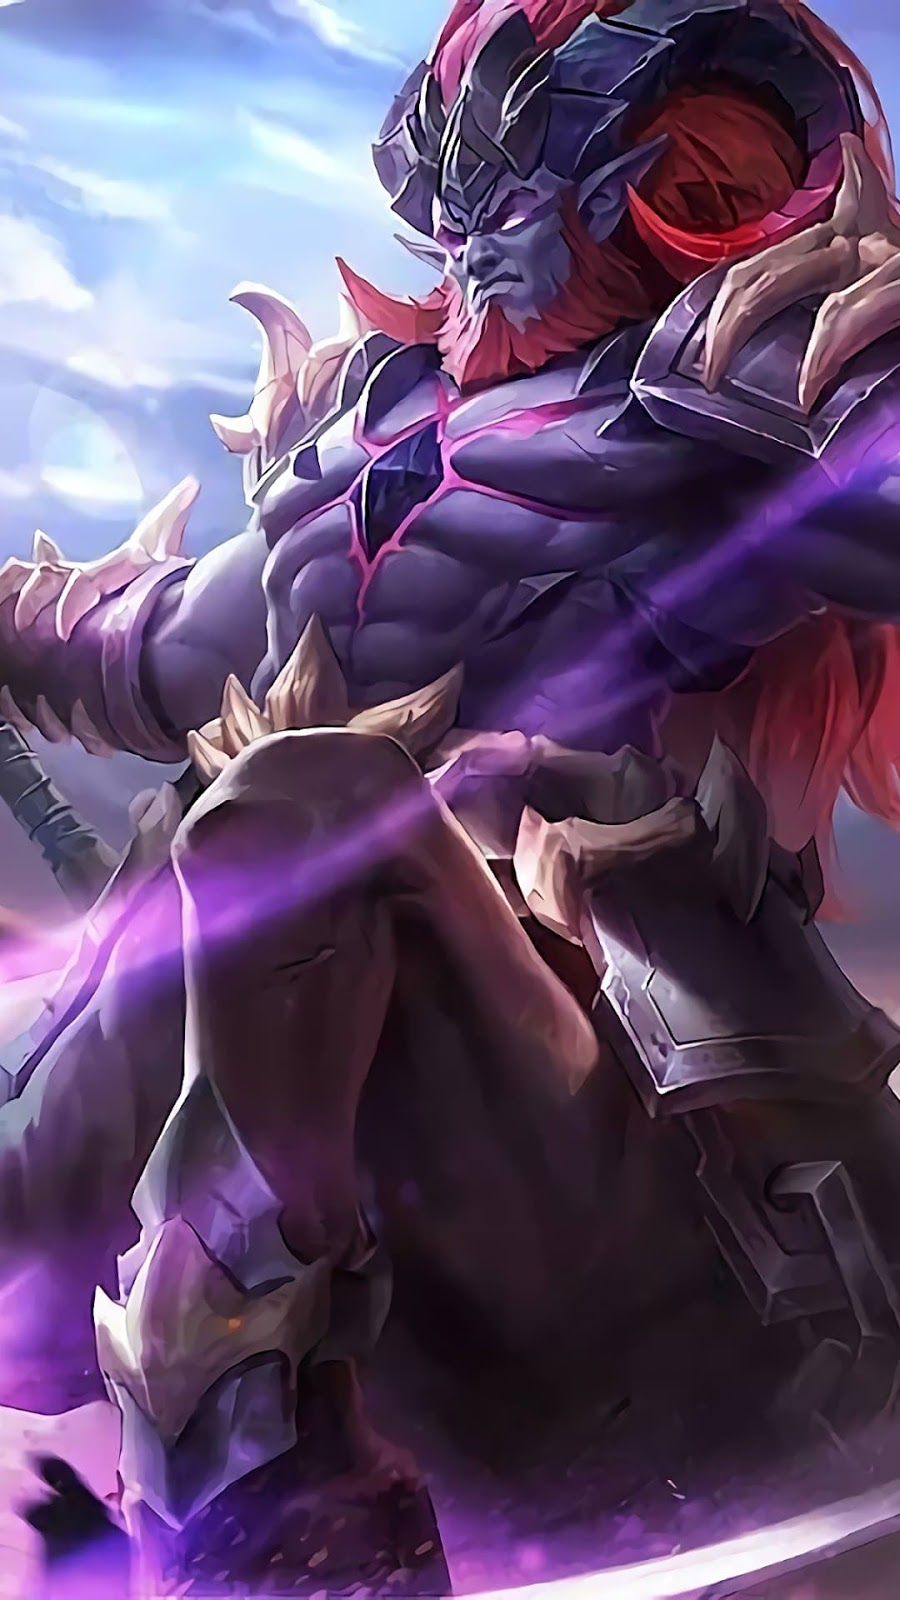 Wallpaper Hylos Abyssal Shaman Skin Mobile Legends HD for Android and iOS